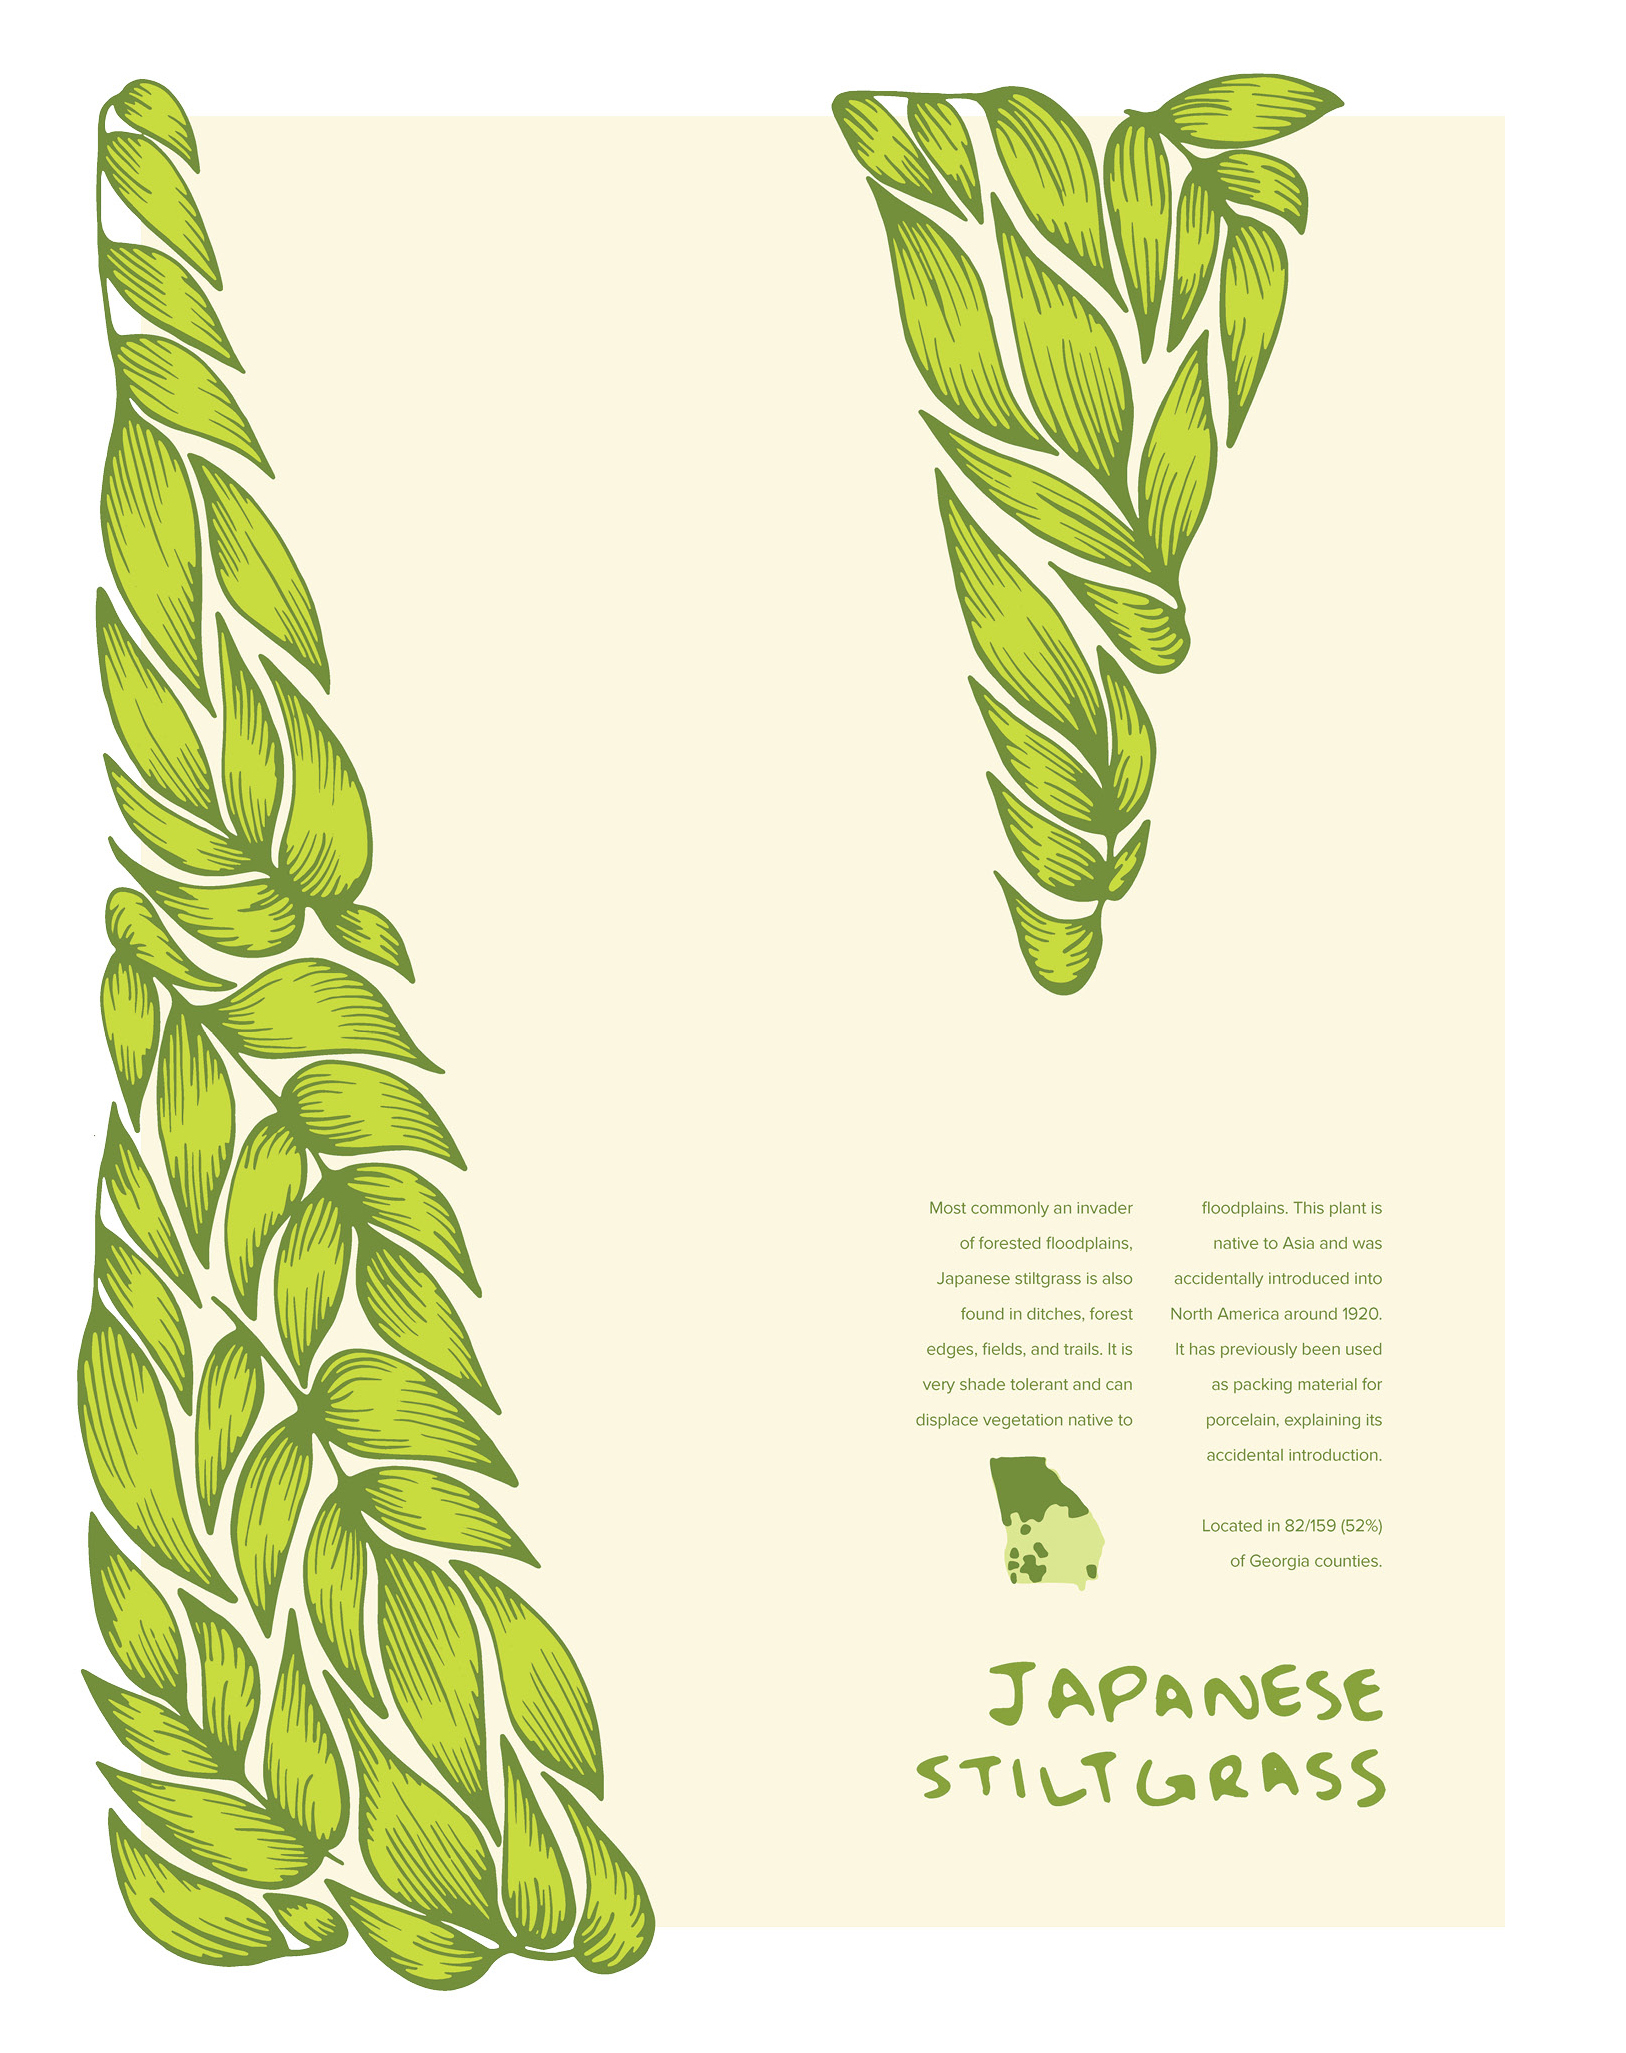 Invasive Poster: Japanese Stiltgrass